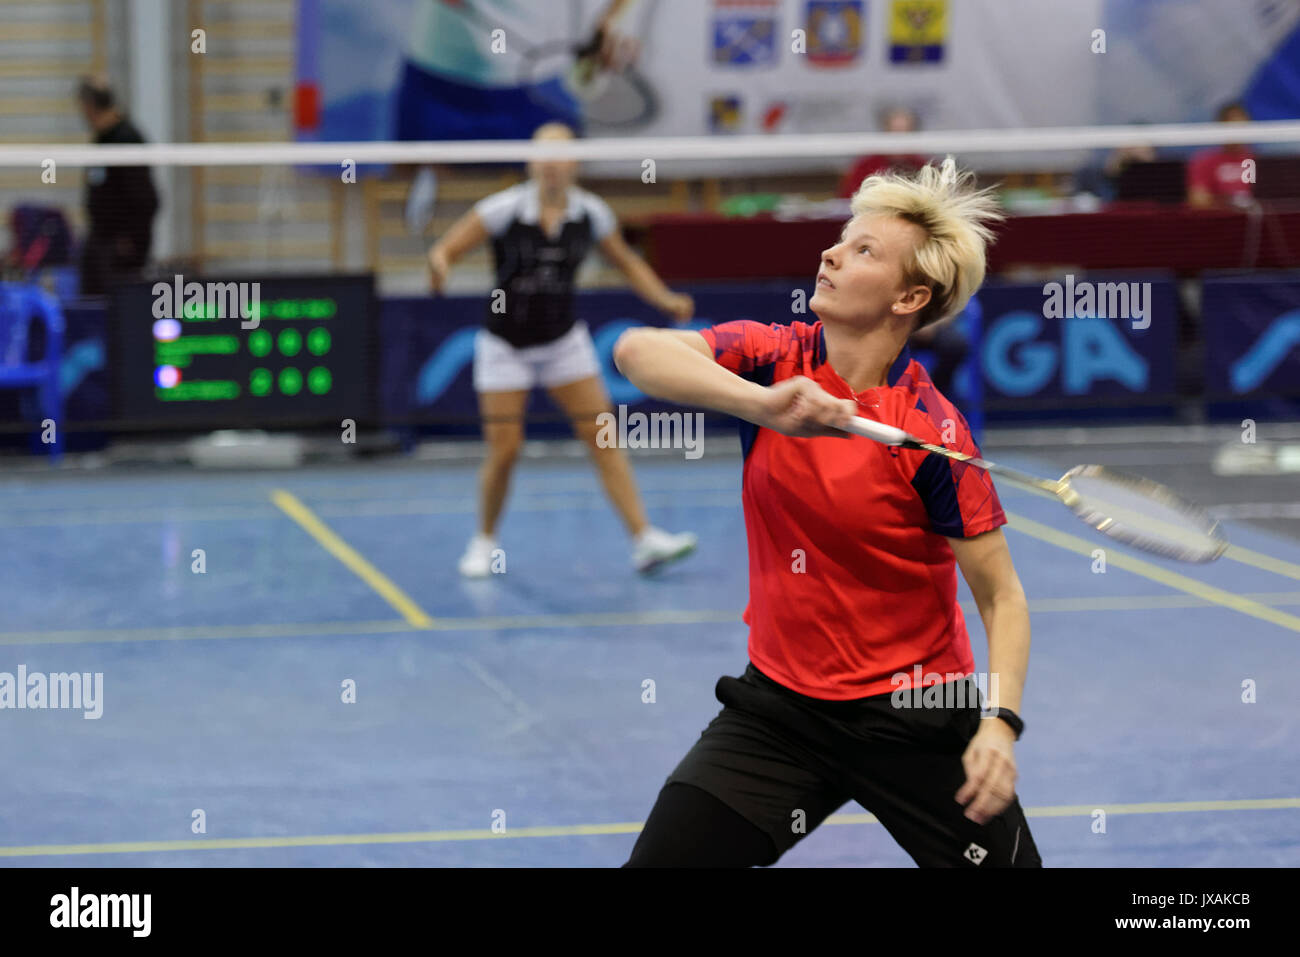 St. Petersburg, Russia - July 7, 2017: Elena Komendrovskaja of Russia (in front) vs Delphine Lansac of France in 3rd day of badminton tournament White - Stock Image